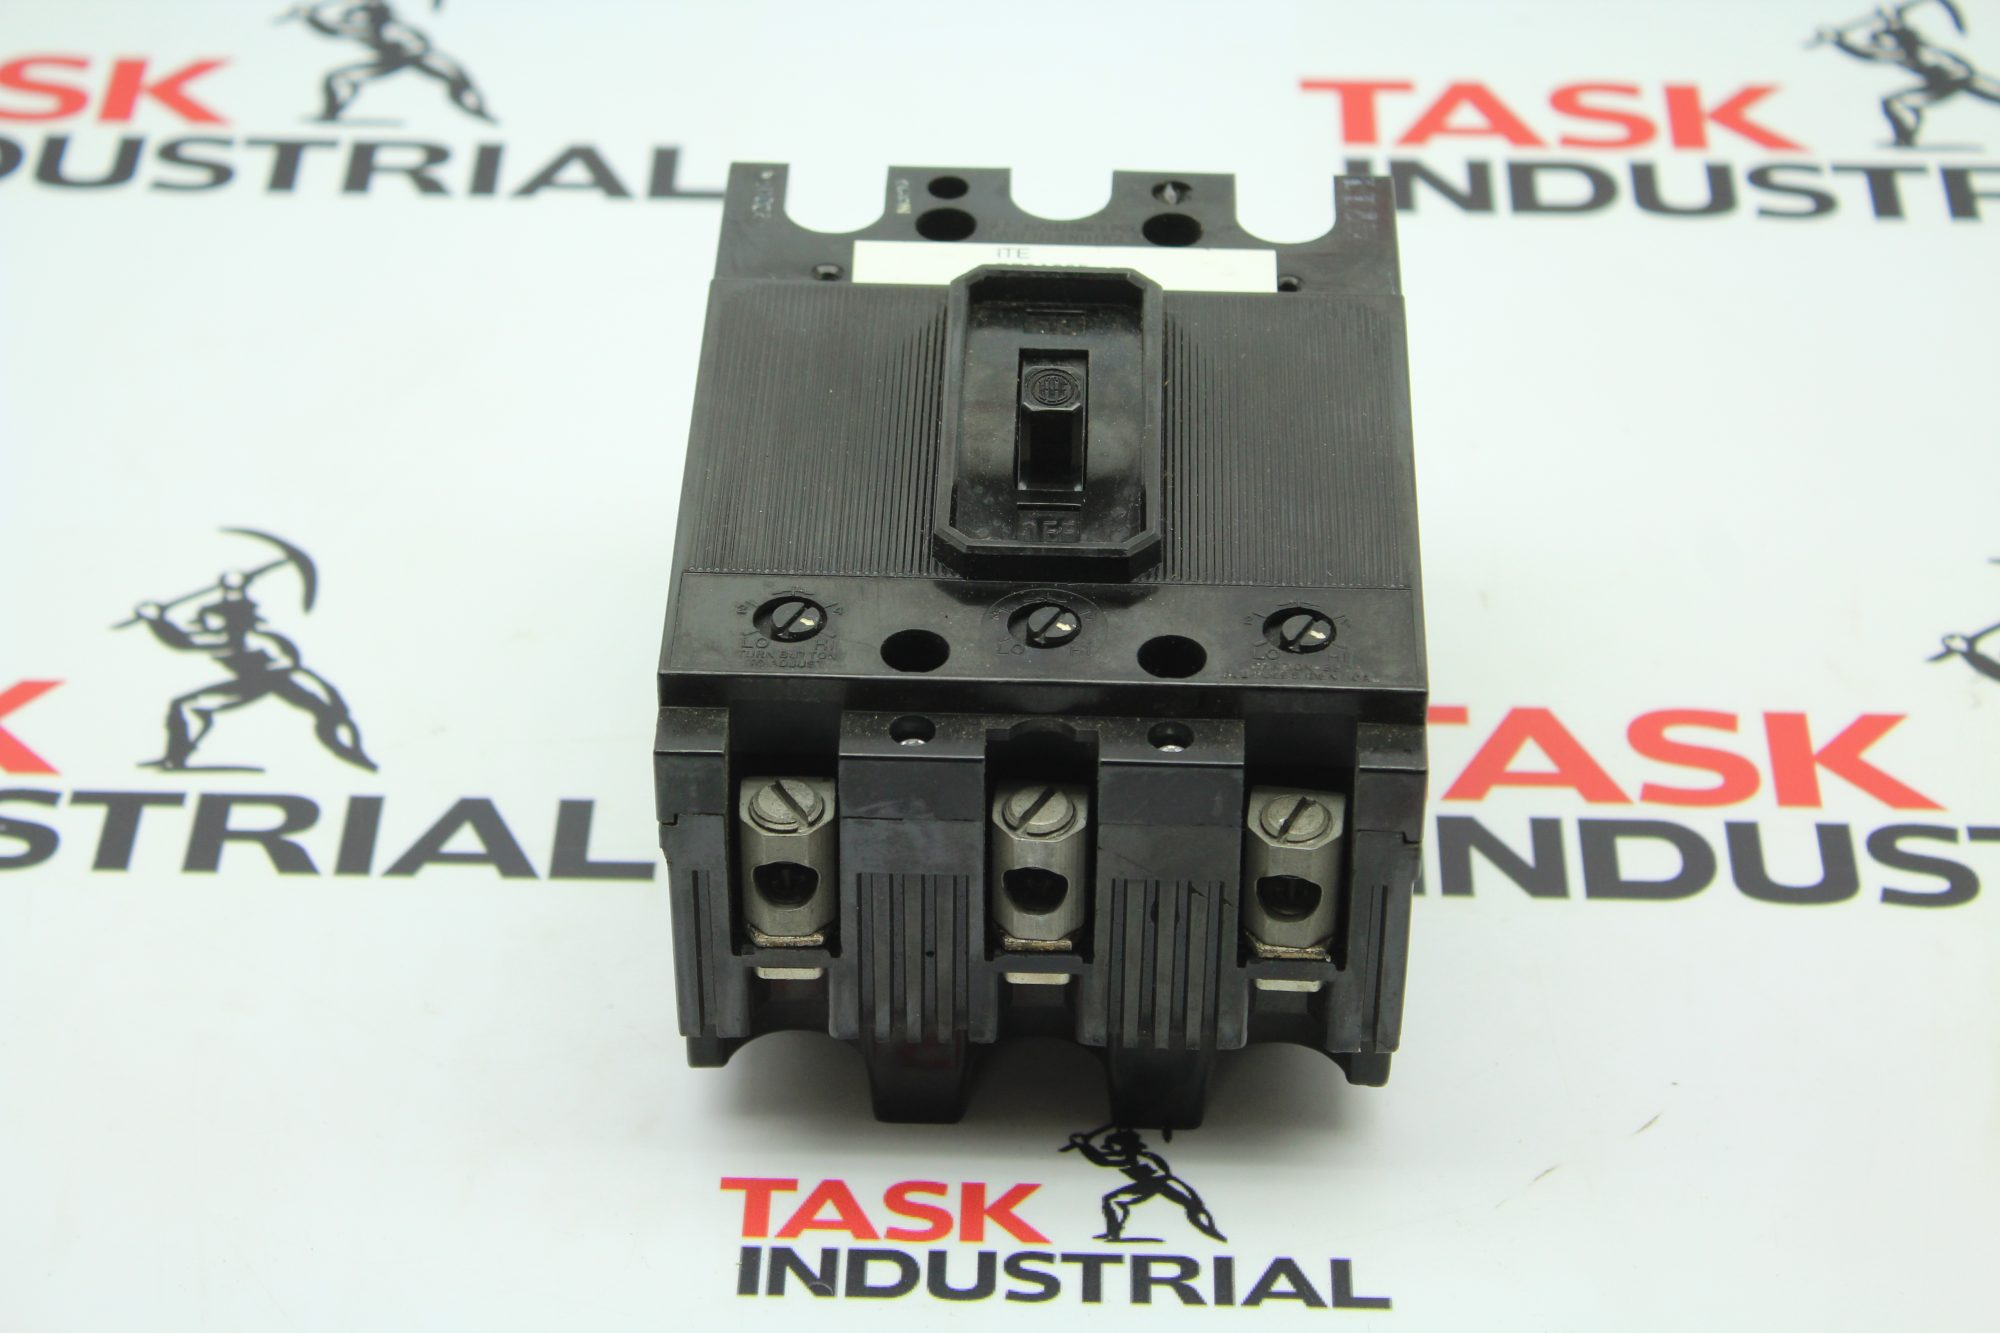 Siemens ITE EF3A025 3P 25A 600V Circuit Breaker